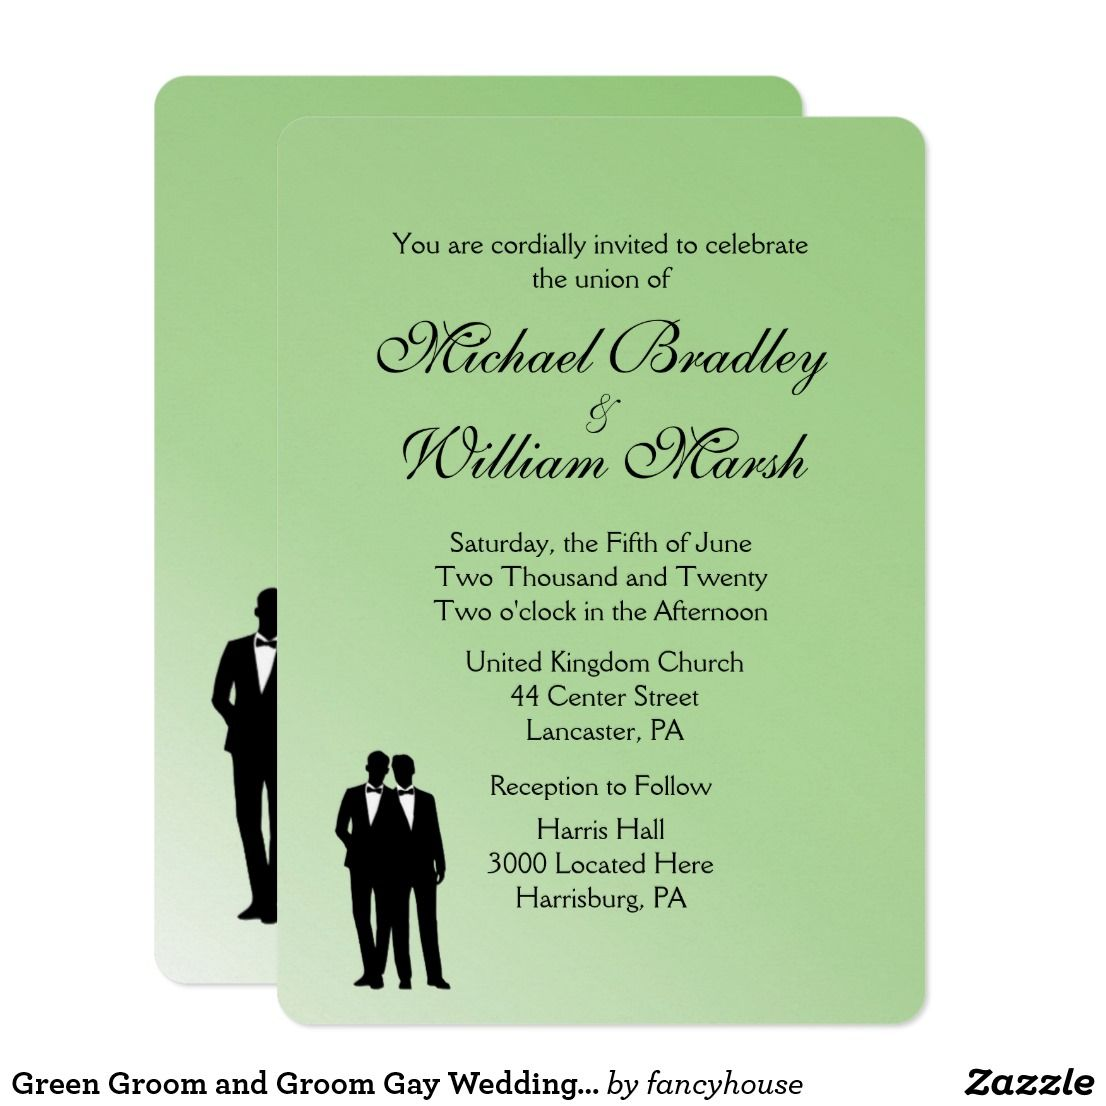 Green Groom And Groom Gay Wedding Invitation Wedding And Weddings